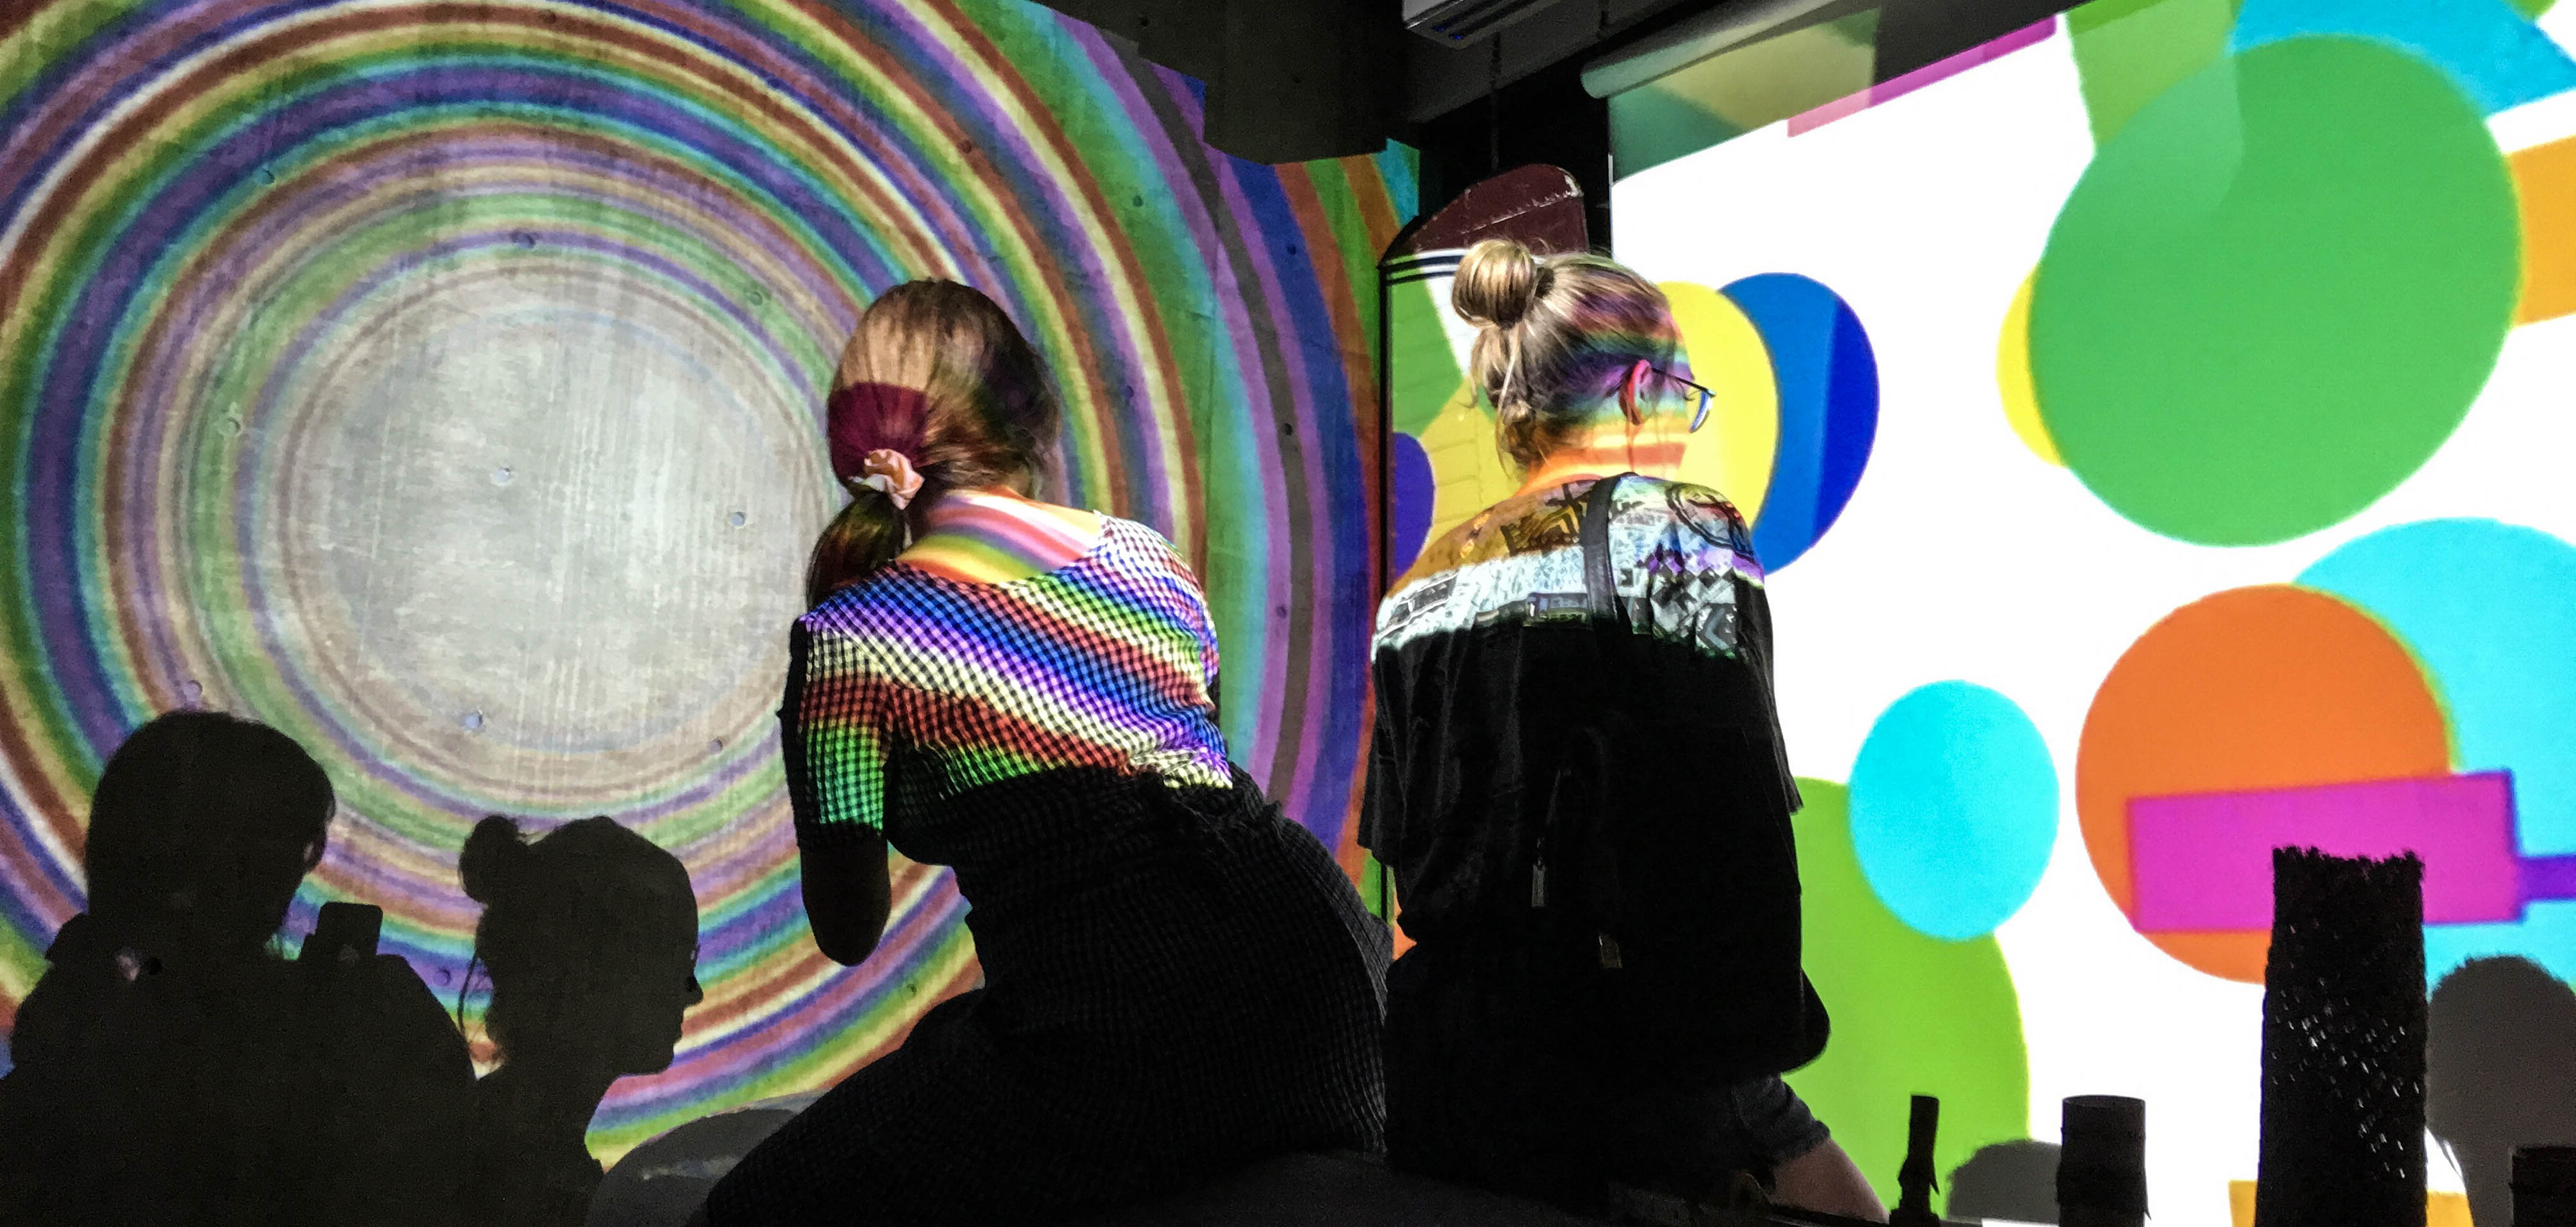 Two girls look at colorful lights at an exhibit in Tulsa's downtown art museum, ahha.